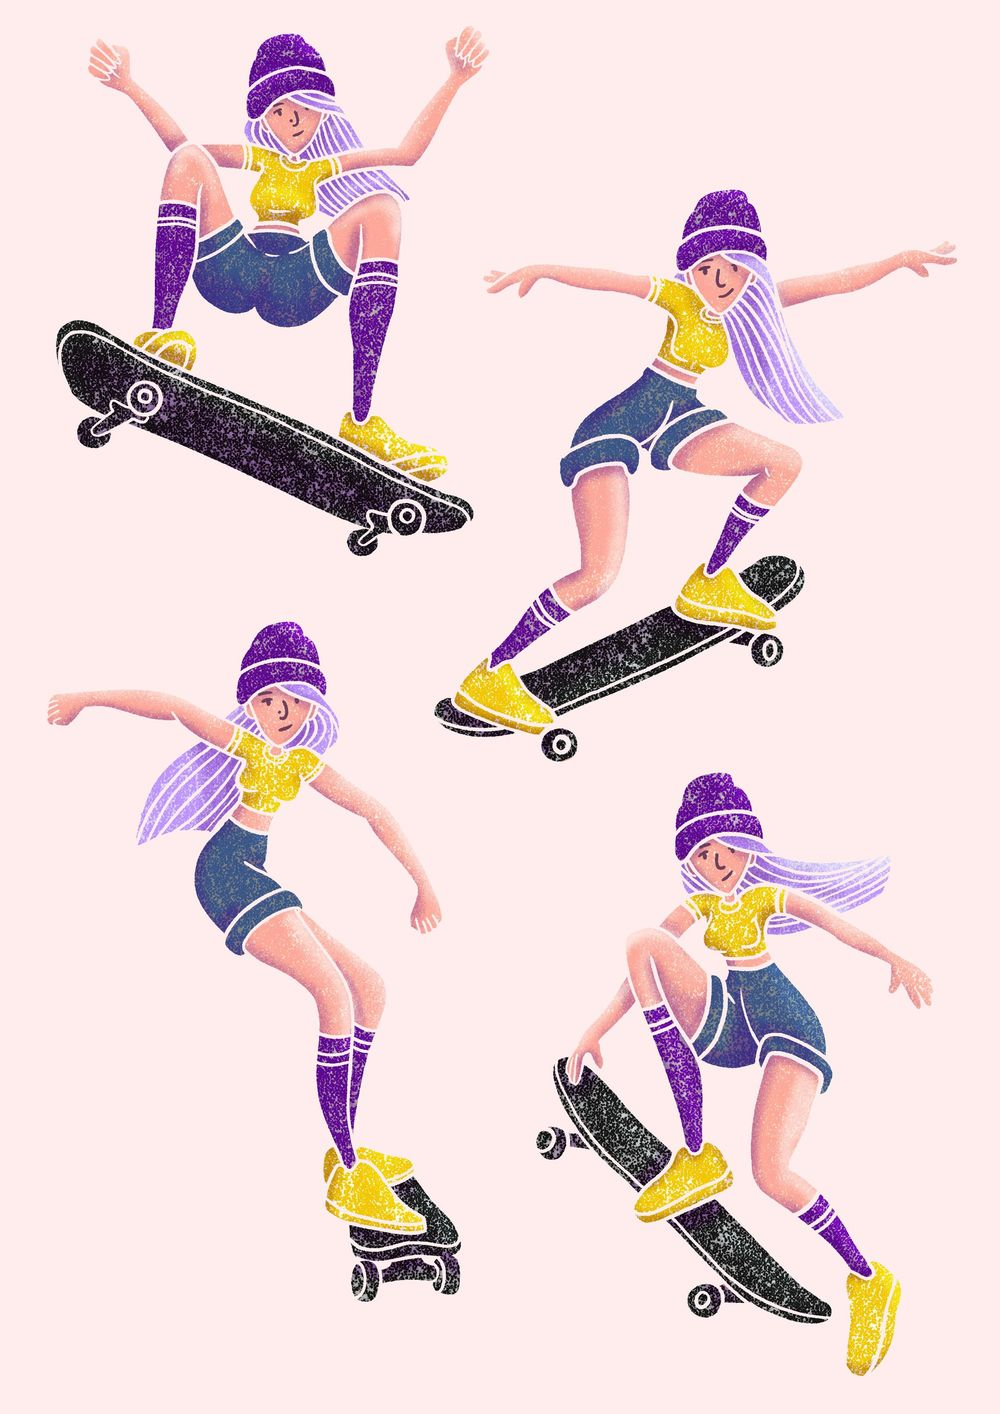 Skater Girl - image 5 - student project